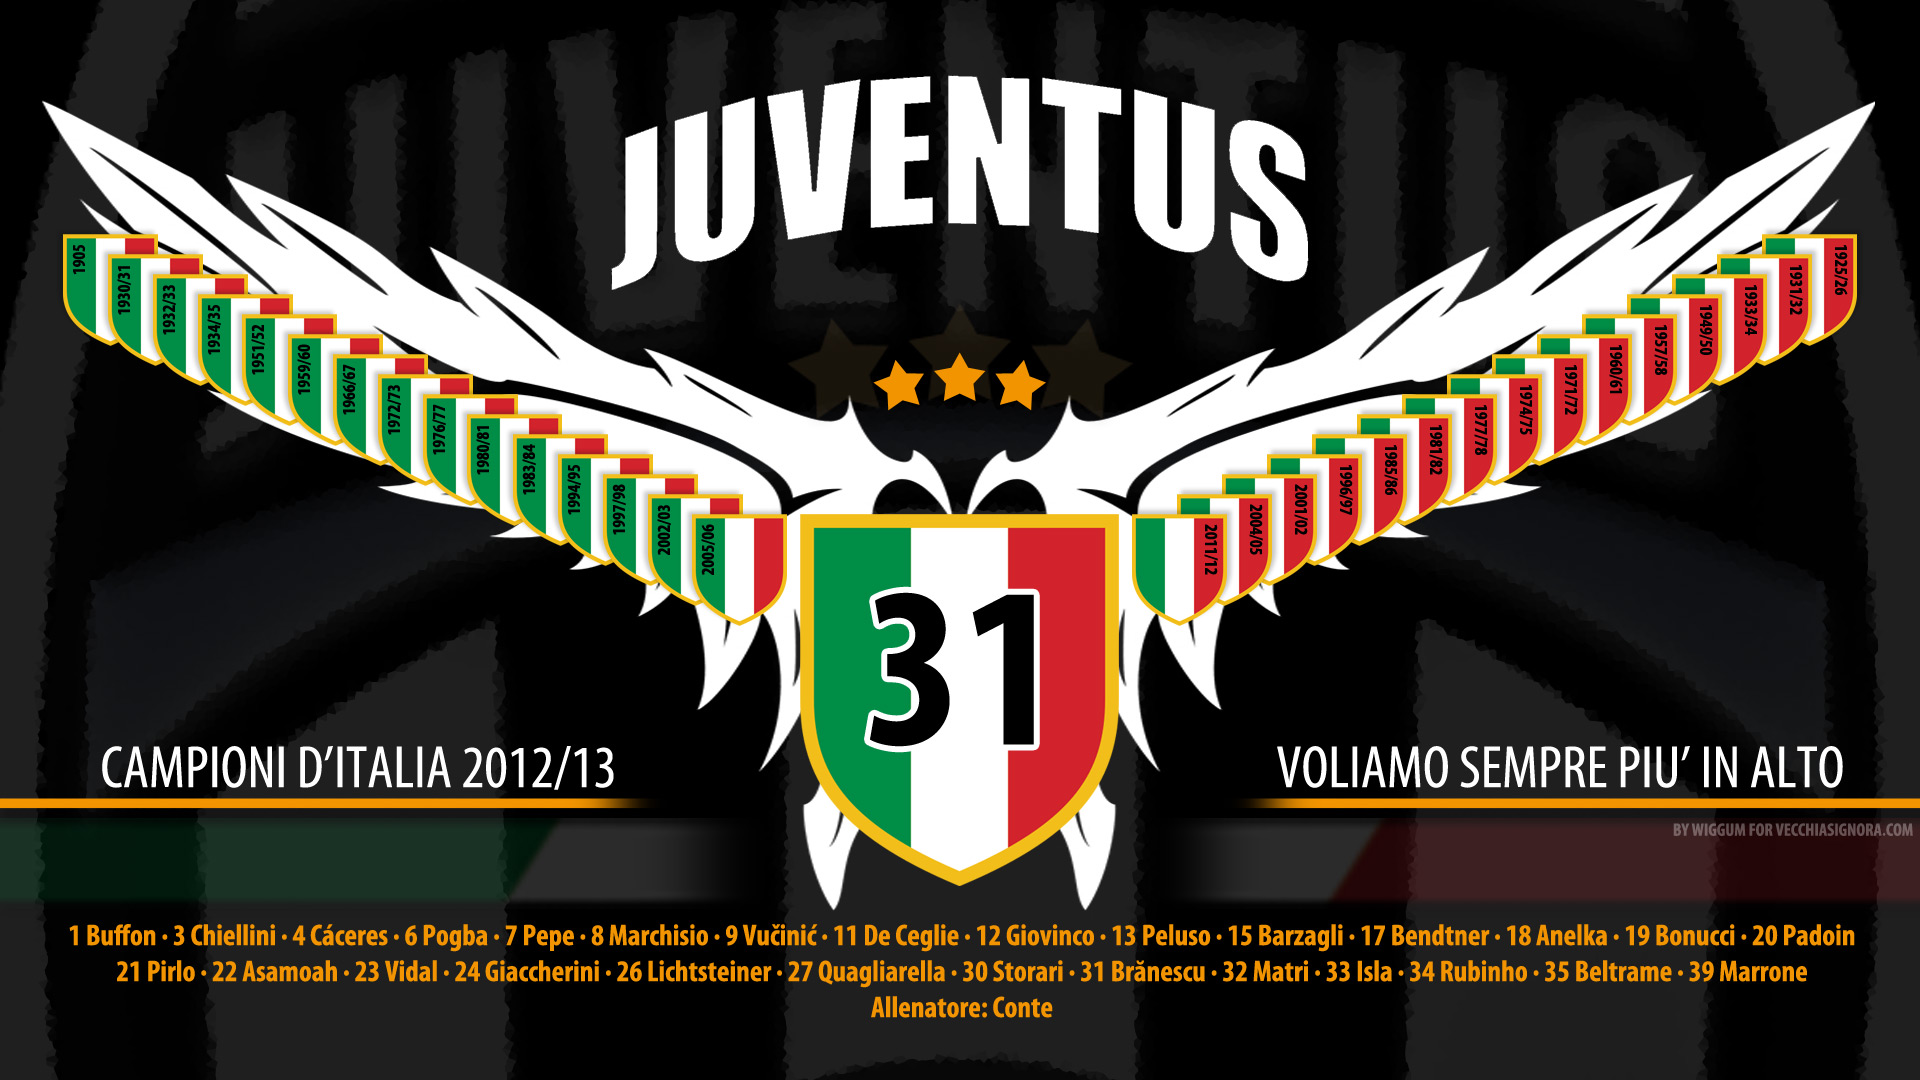 wallpaper_sfondo_juventus_31_scudetto_2012_13_BLACK